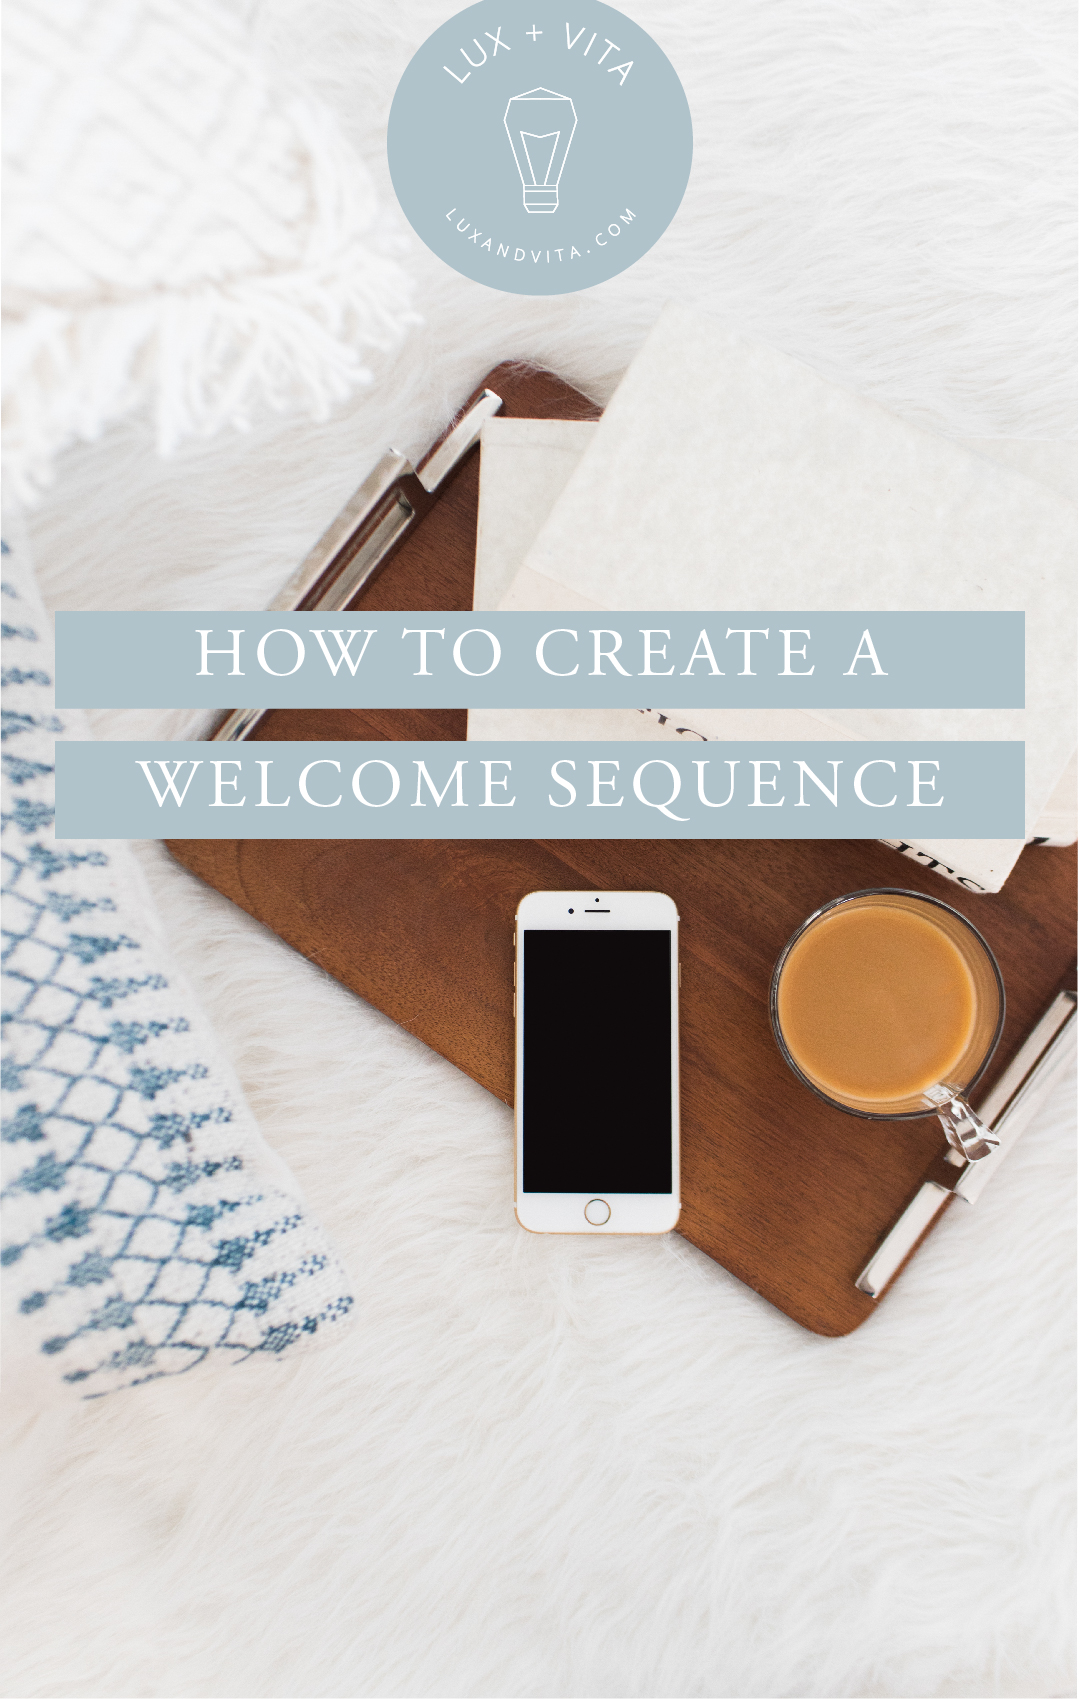 How to write an email welcome sequence for new subscribers #welcomeseqence #welcomeemail #copywriting